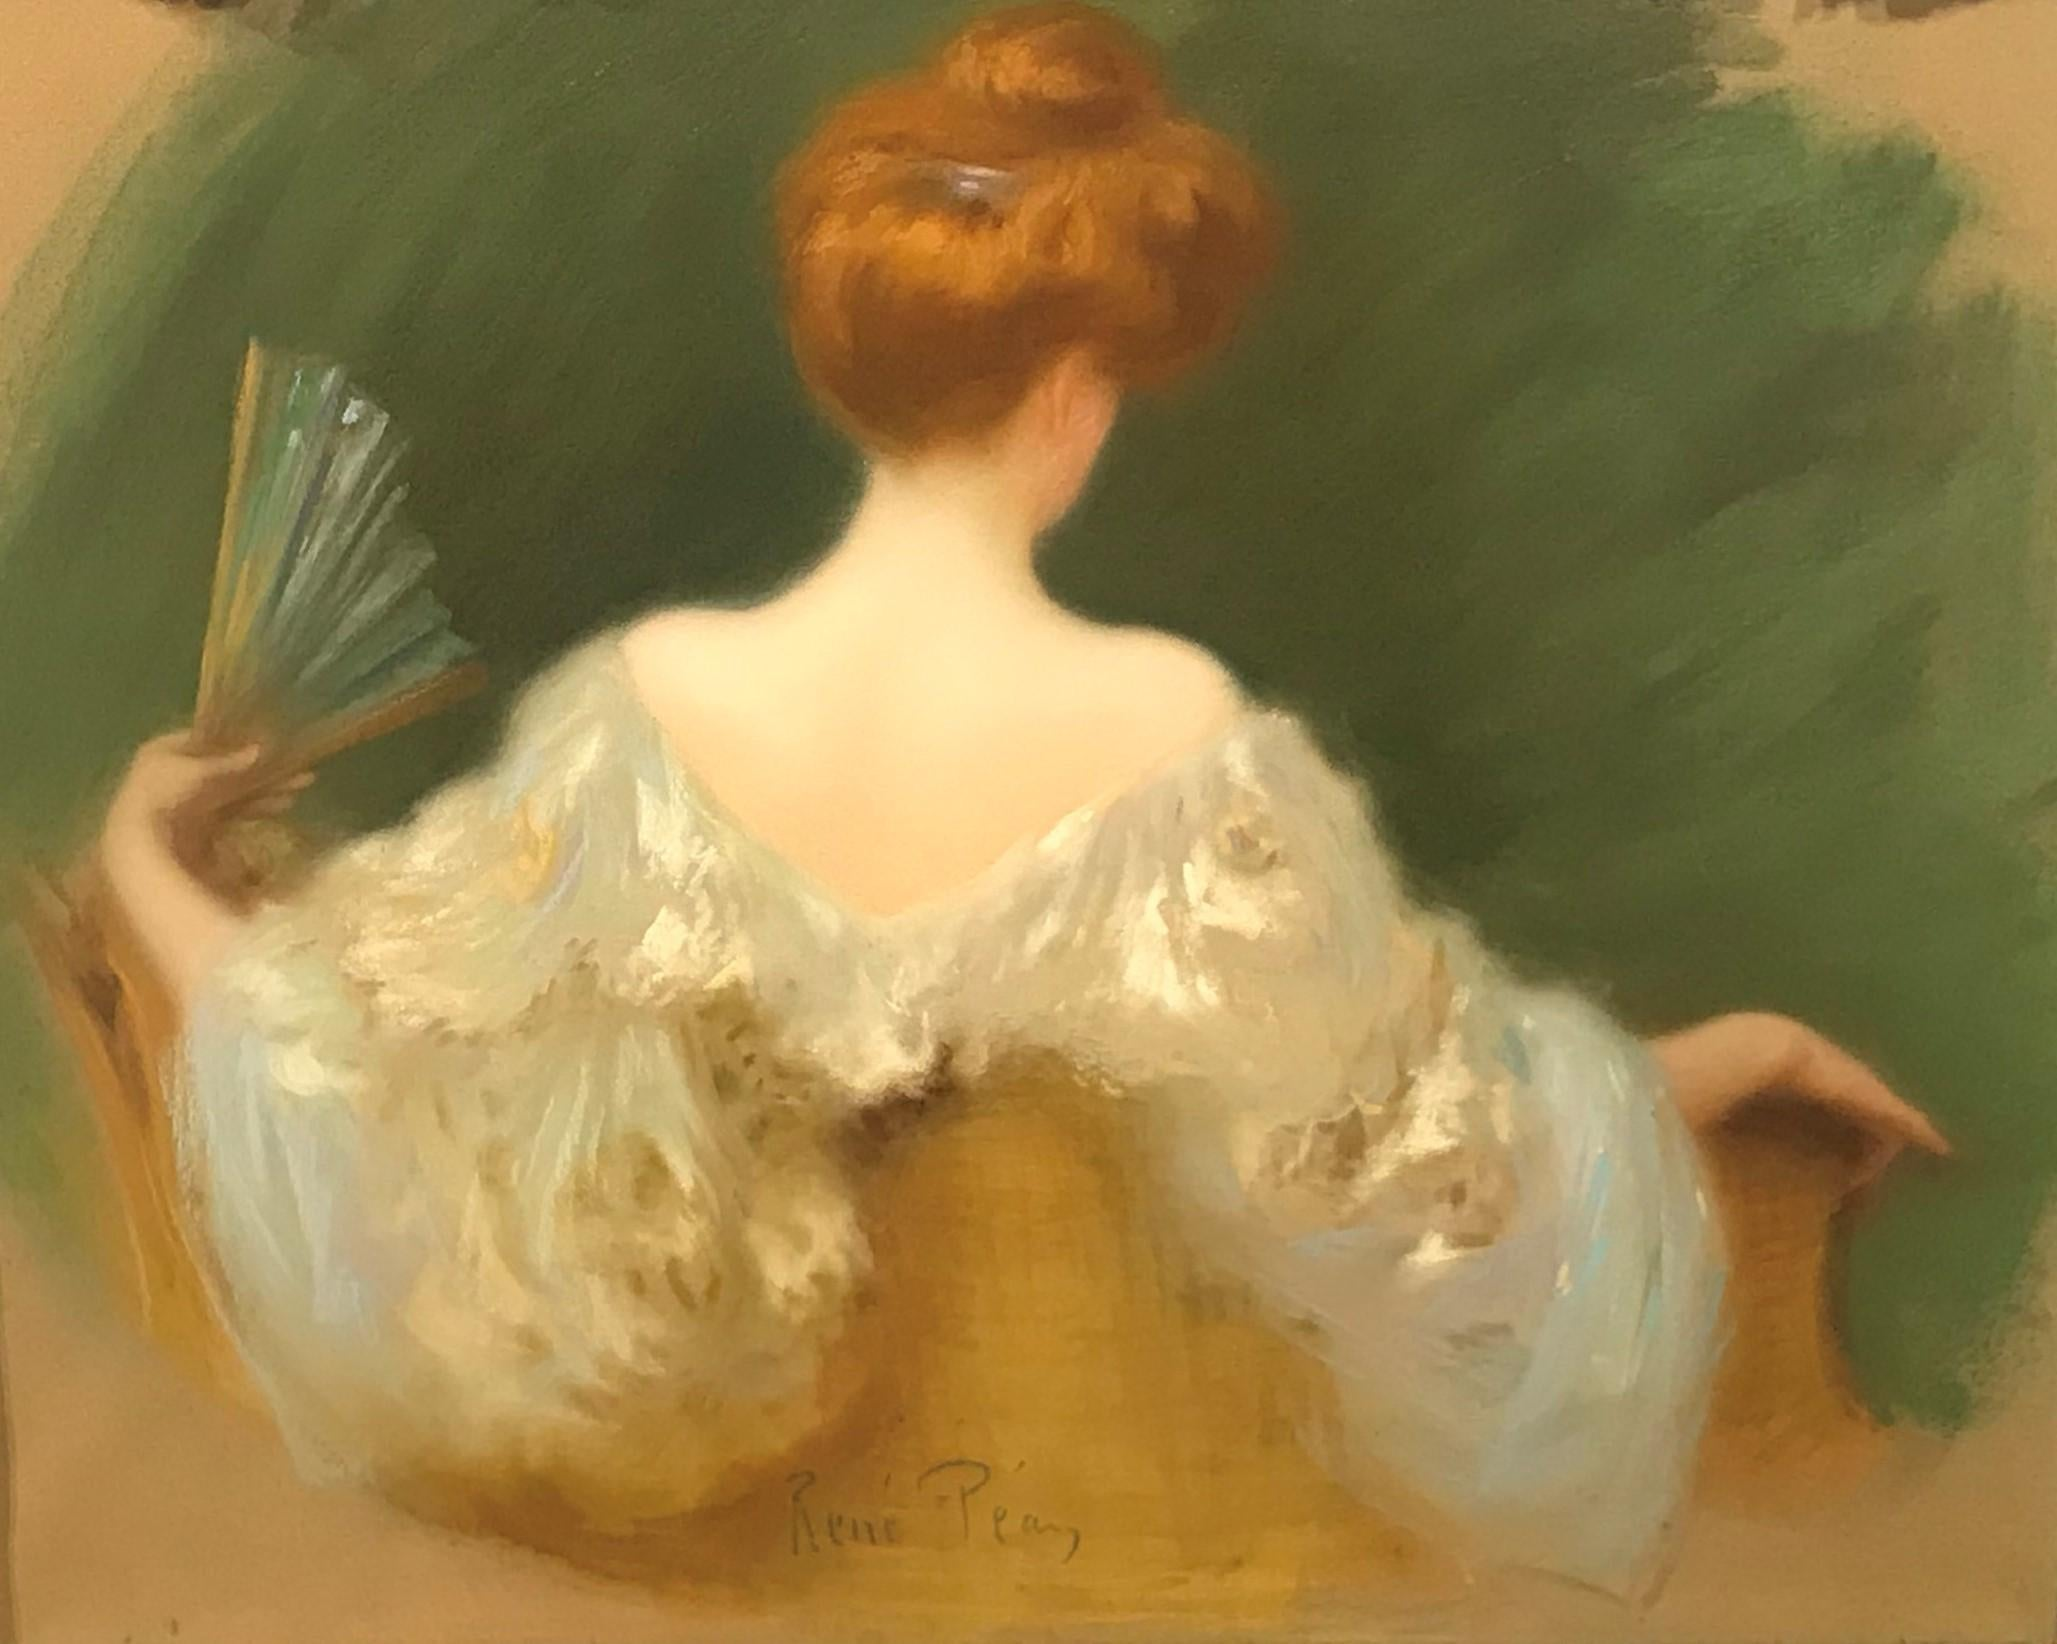 French Pastel Portrait of the Artist's Wife with a Fan, Rene Pean, c. 1920s